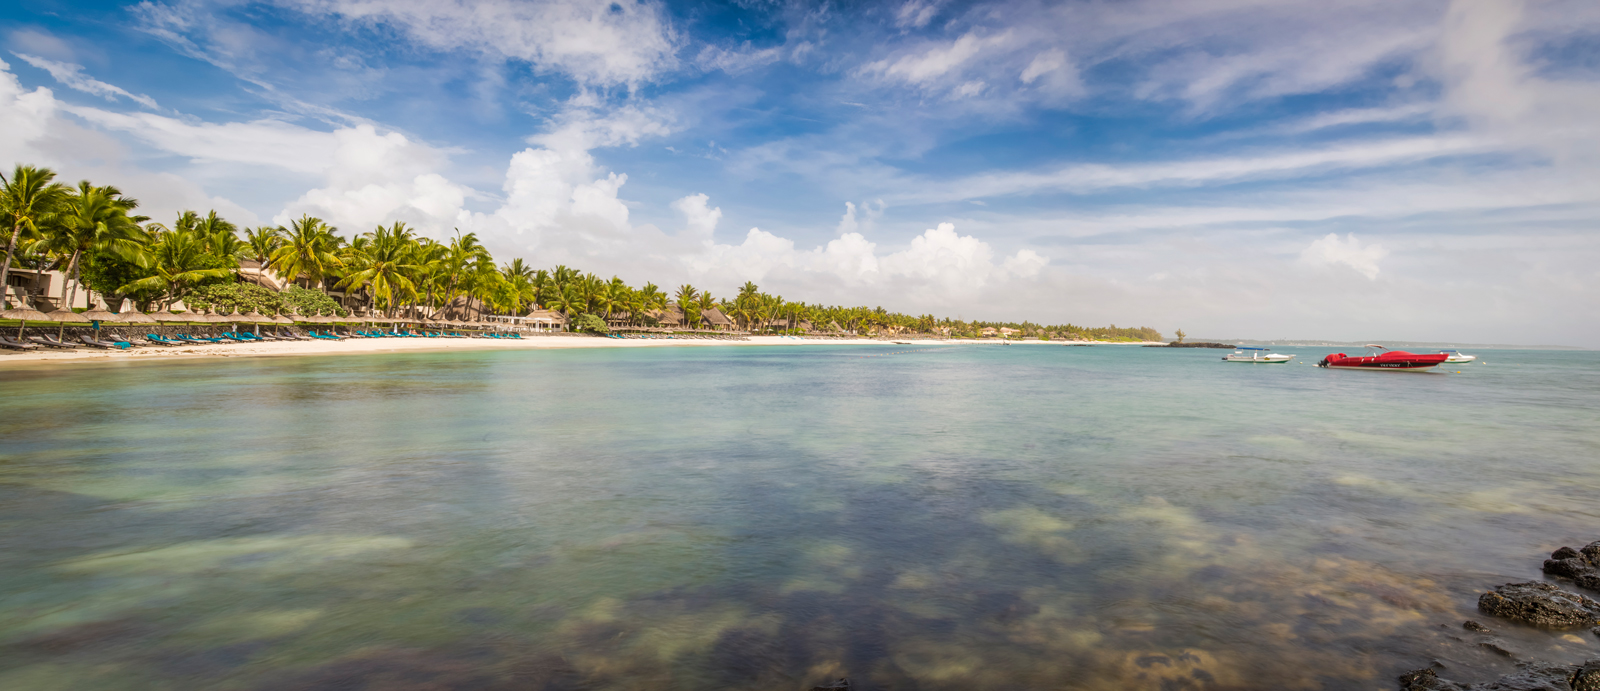 """With views like this, it is easy to see why Mauritius is often referred to as 'Paradise Island' by the locals ©<a href=""""https://www.constancehotels.com/en""""target=""""_blank"""">Constance Hotels and Resorts</a>"""